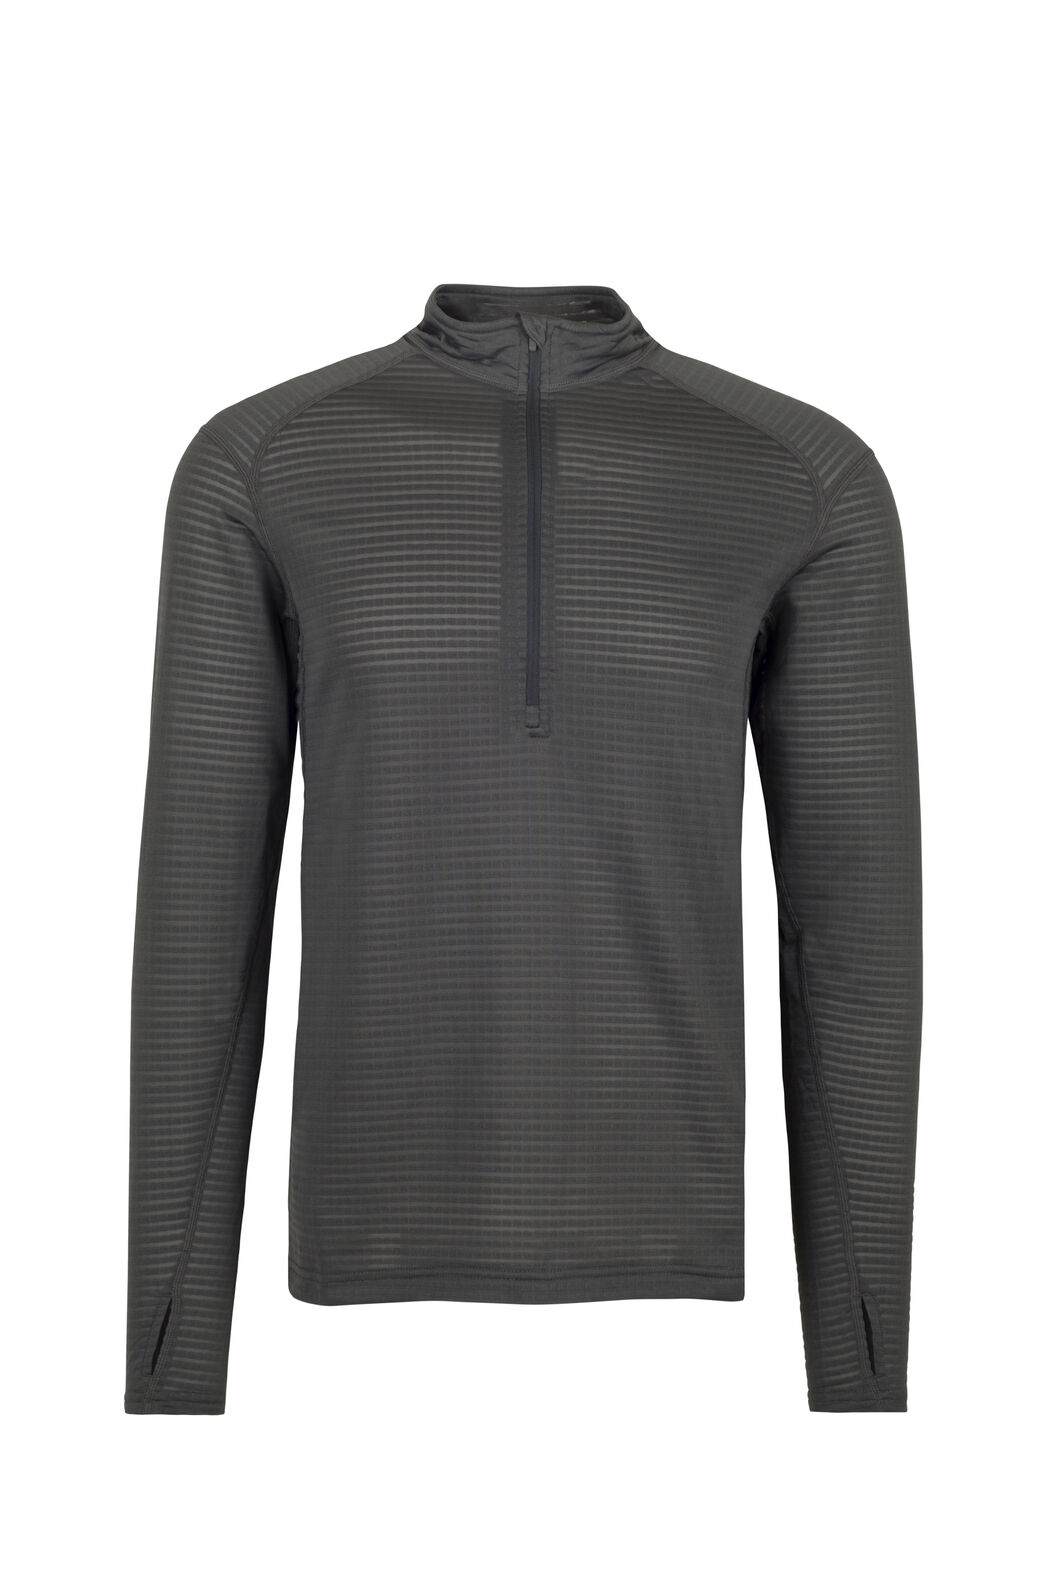 Macpac Prothermal Polartec® Long Sleeve Top — Men's, Forged Iron, hi-res